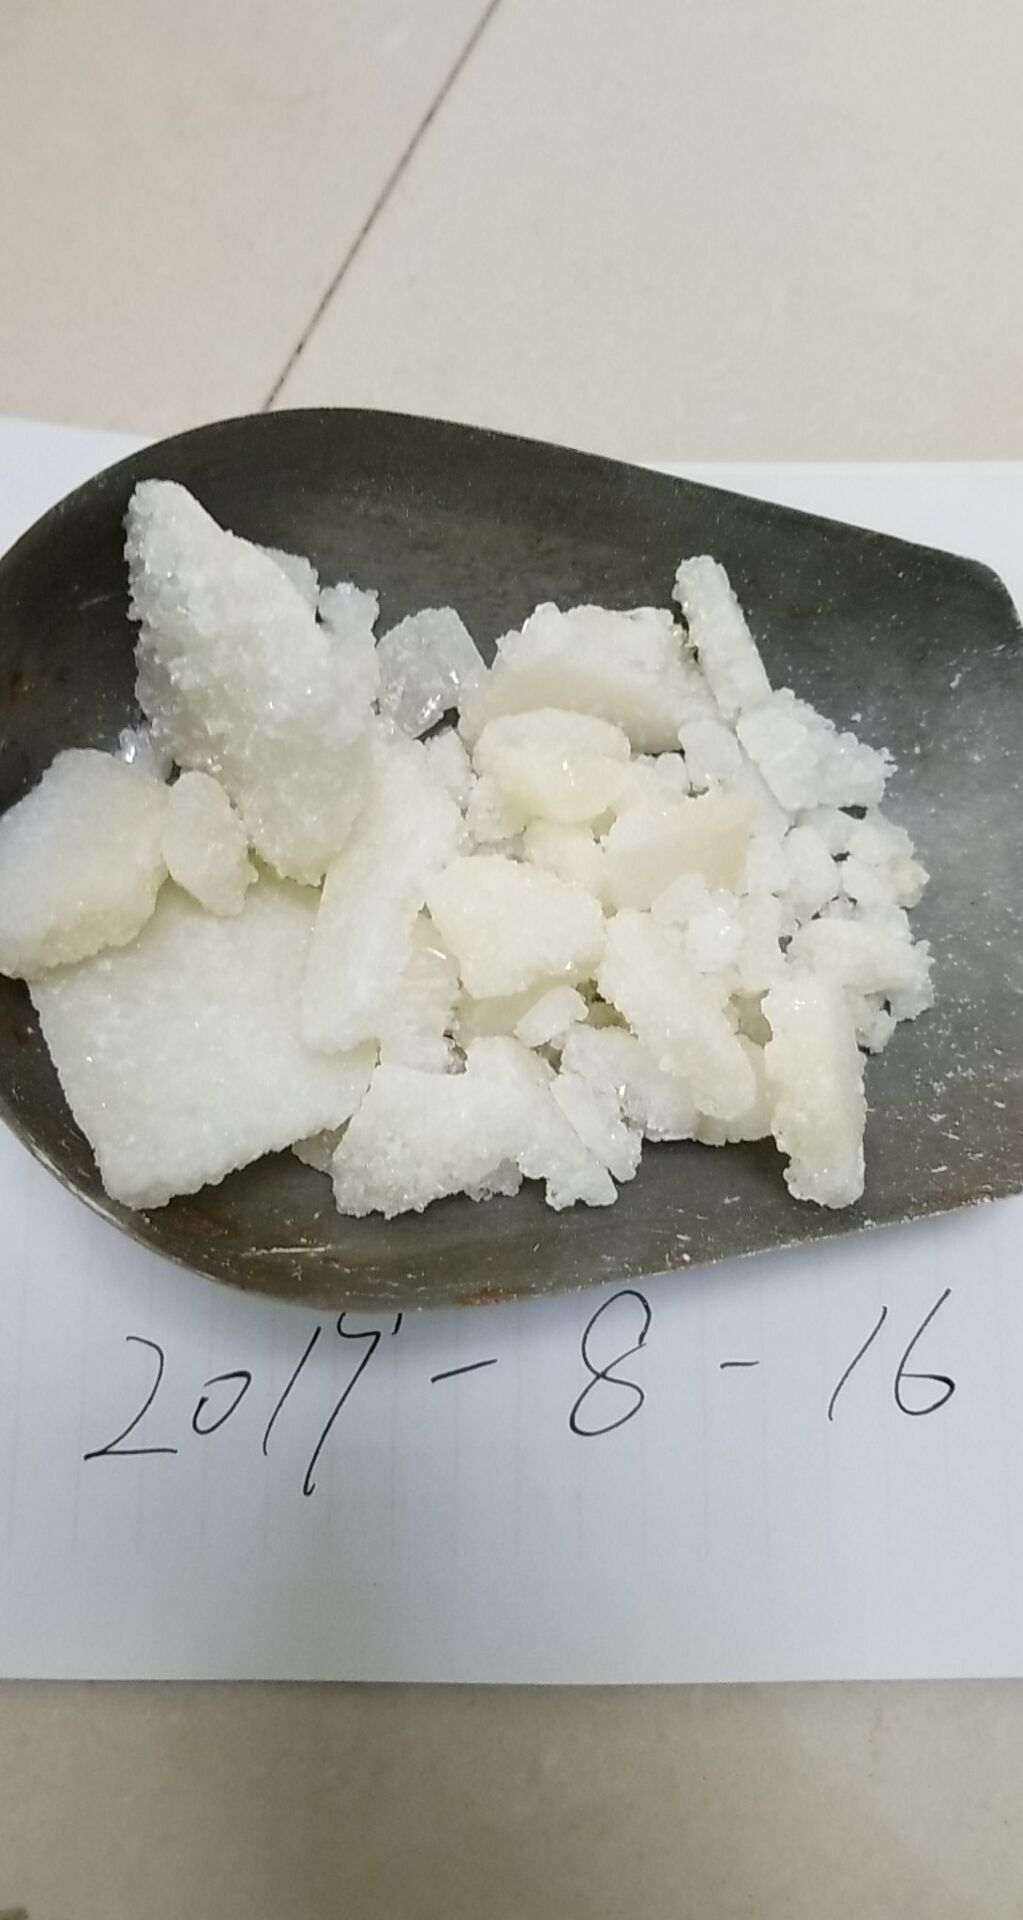 2FDCK crystal form ,Sample package